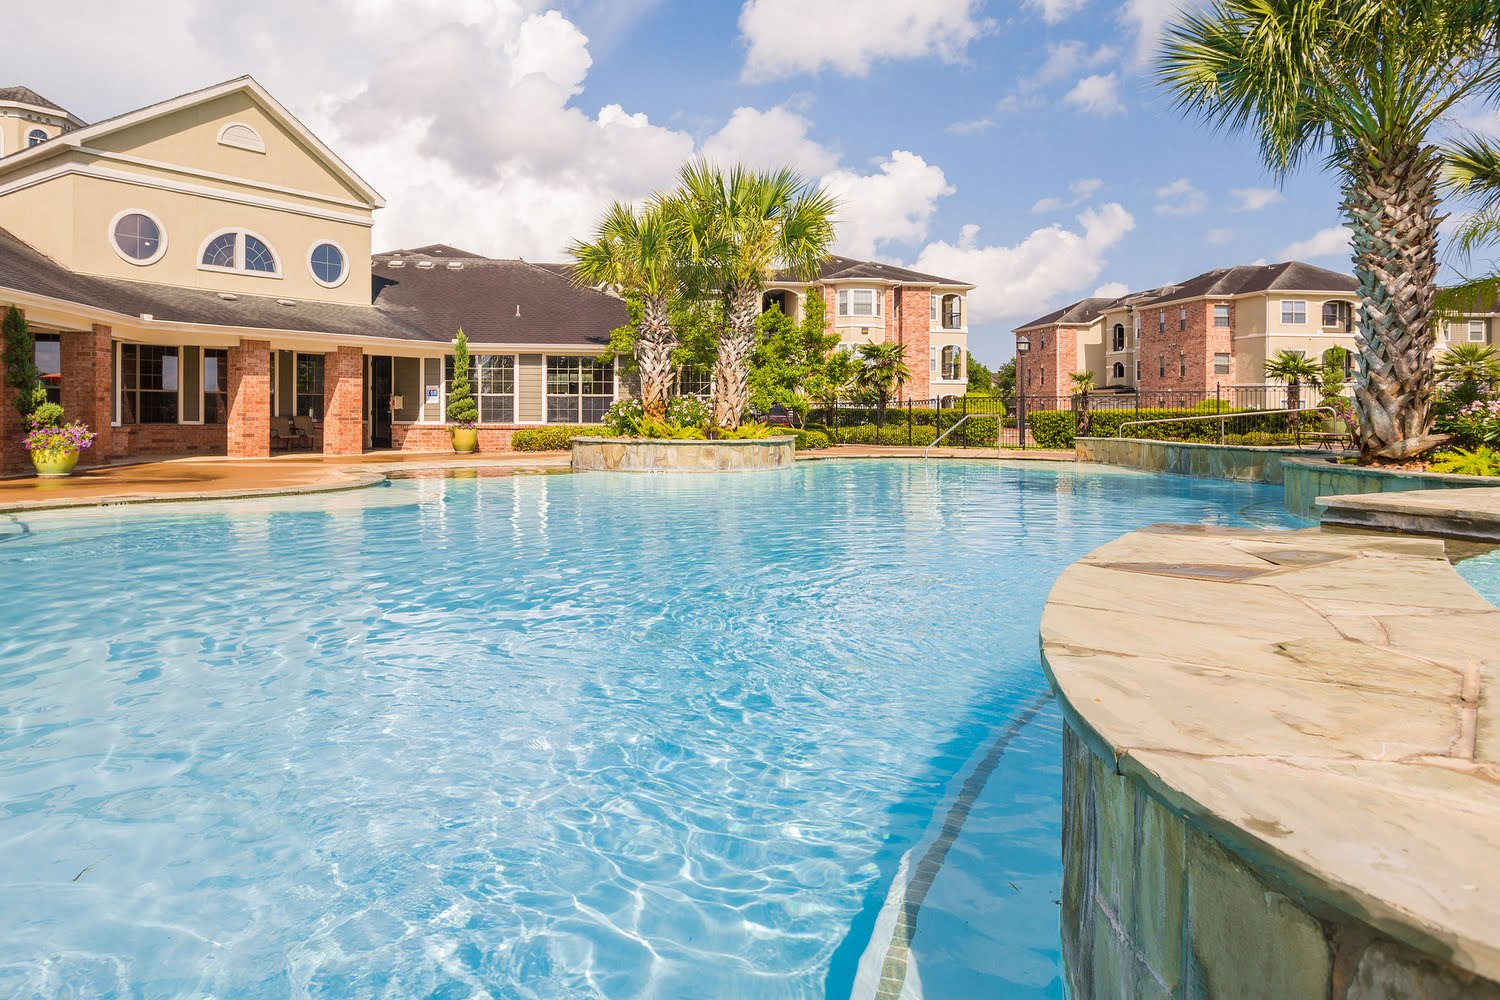 Reserve At Tranquility Lake Apartments In Pearland Texas